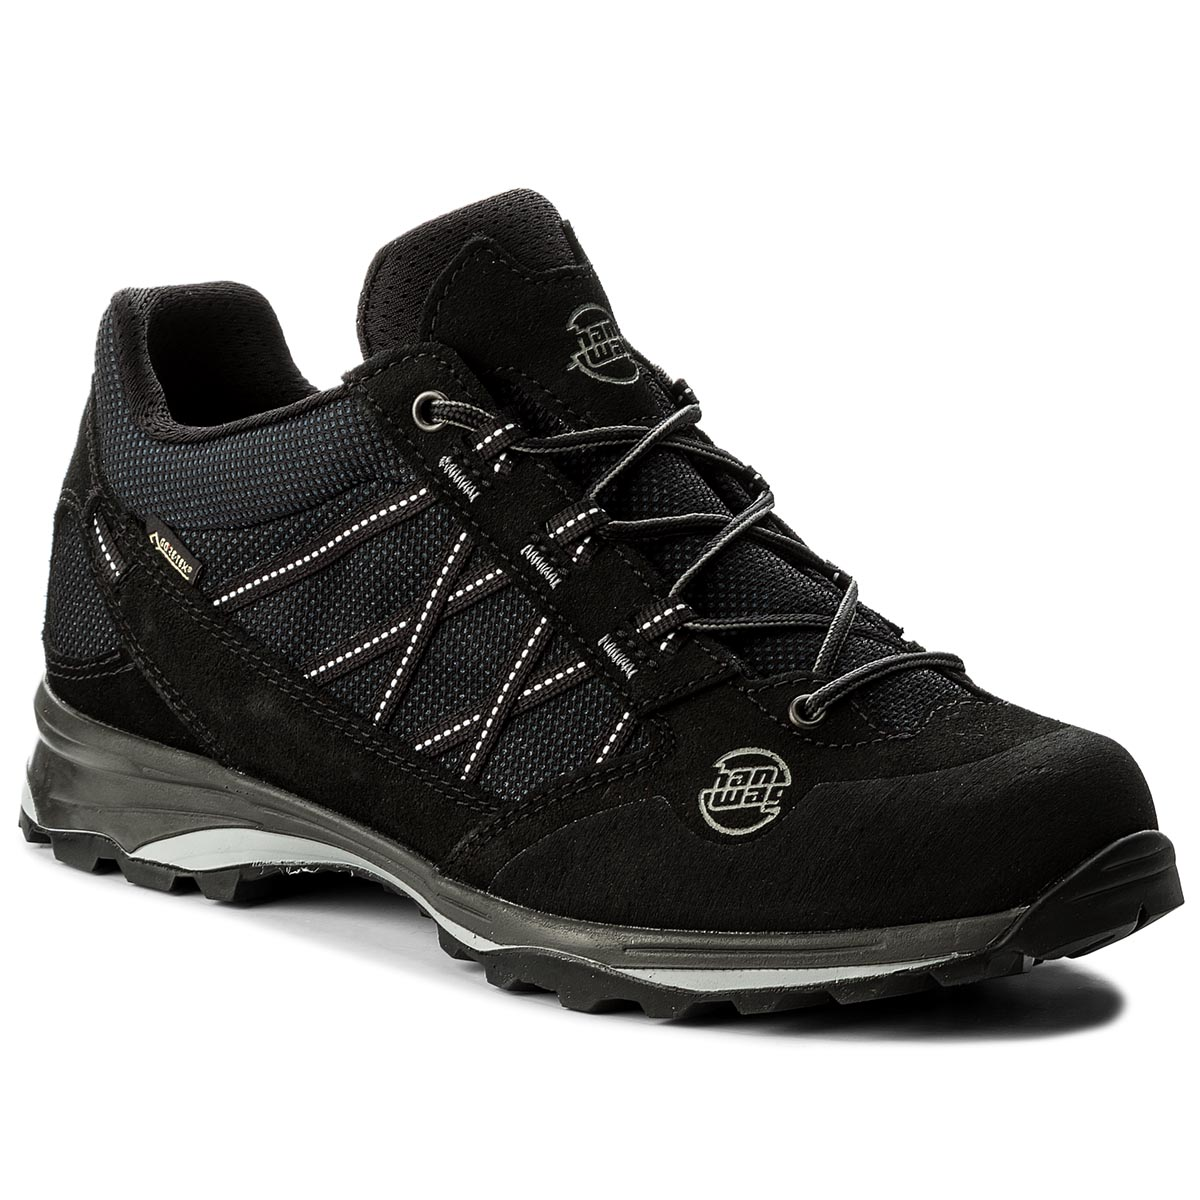 Trekkingi HANWAG - Belorado II Low Gtx GORE-TEX 201200-012012 Black/Black